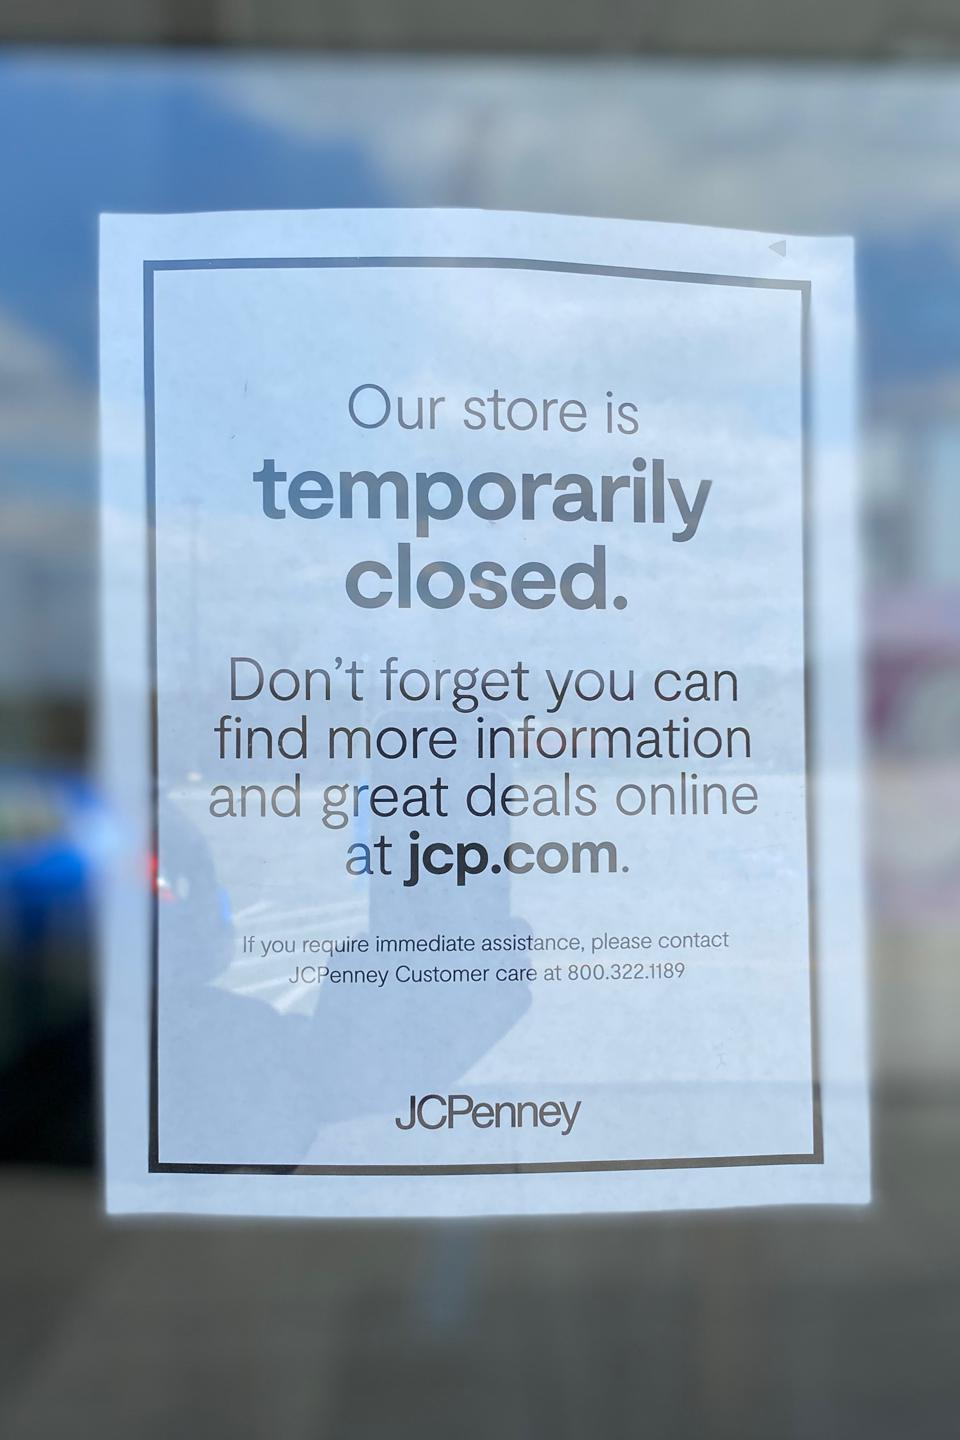 The JCPenney White Marsh Mall store in Maryland was temporarily closed on March 18, 2020 due to the COVID-19 outbreak.